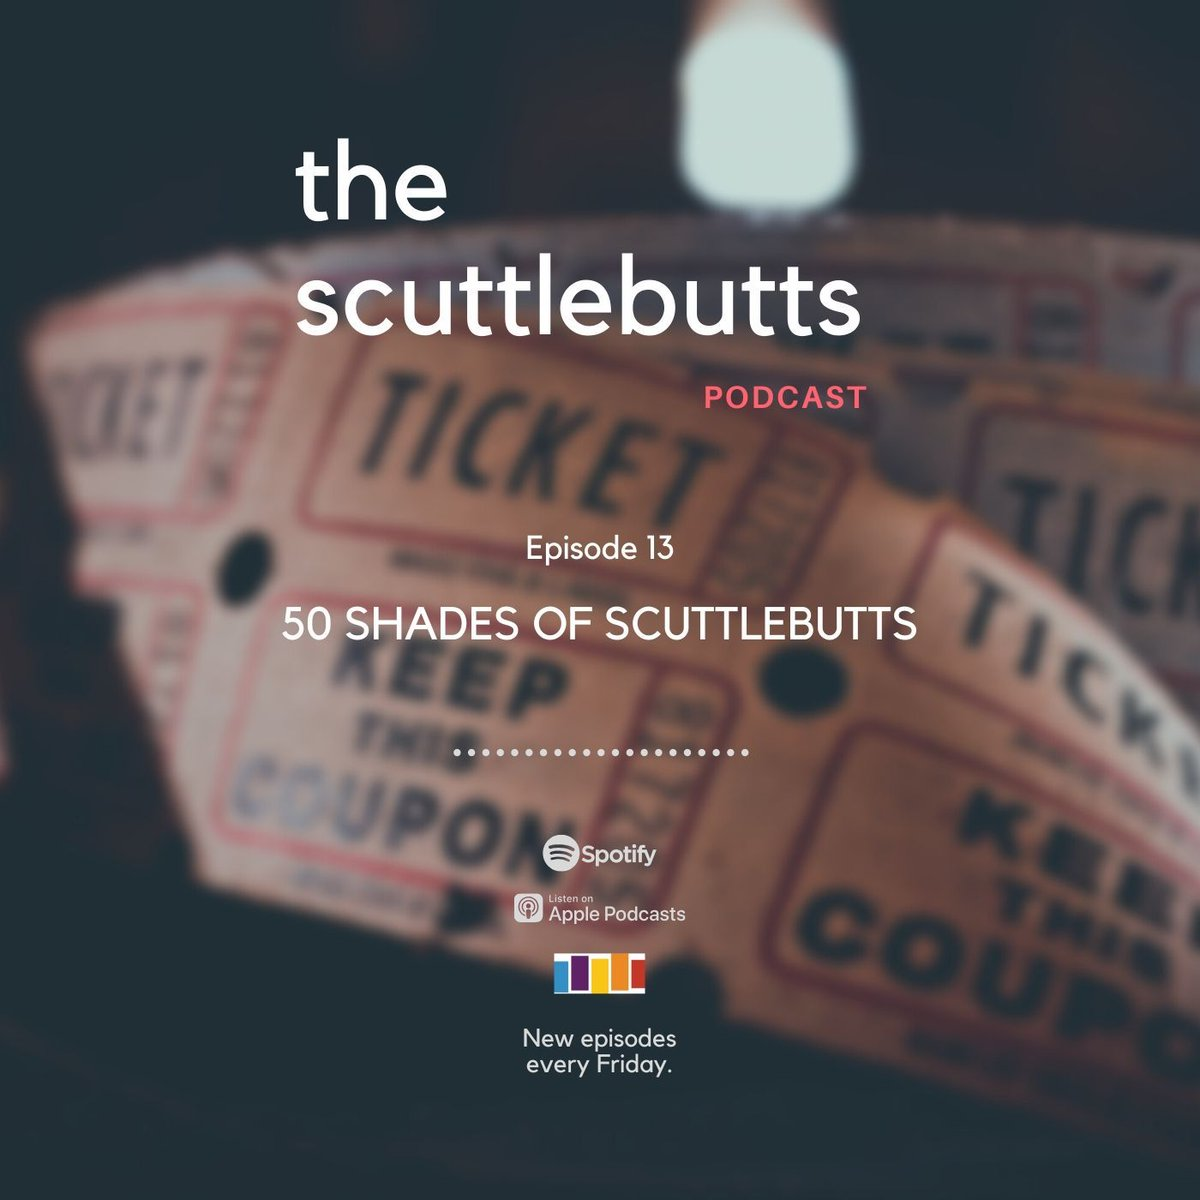 The Scuttlebutts discuss why we were glad The Irishman didn't win any Oscars, why Valentine's Day is dumb, and why Christian Grey is really a great guy. No really, hear us out.#50shadesofgrey #ValentinesDay2020 #Friday #podcasts #live #TheIrishman #TheIrishman